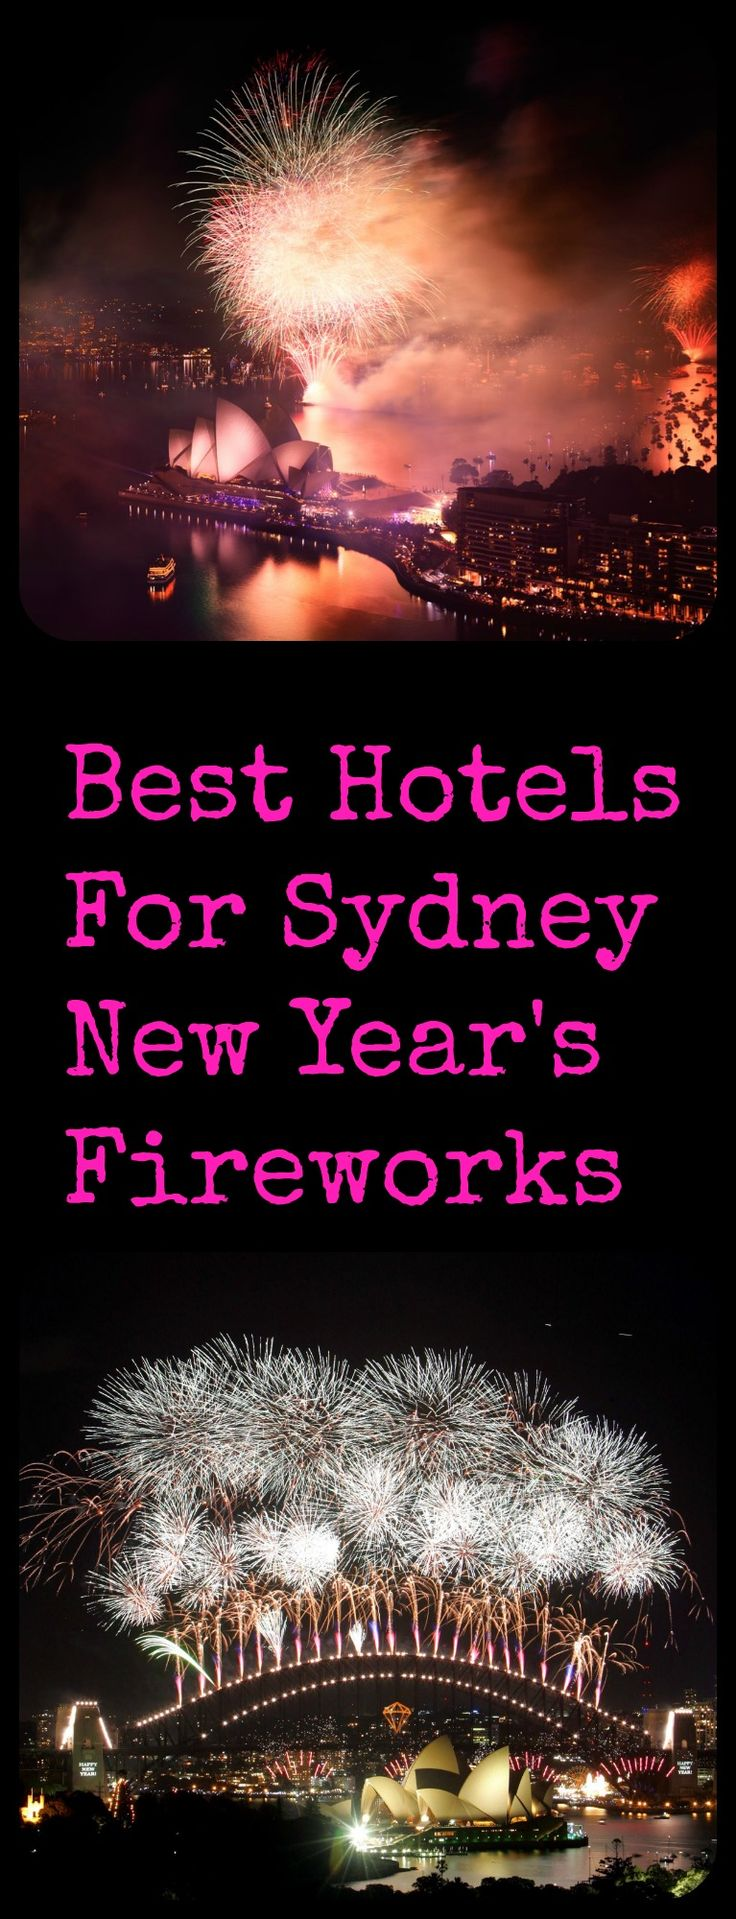 The best hotels for Sydney's New Year's Eve Fireworks, from hotels with killer views to luxury options close to the action.